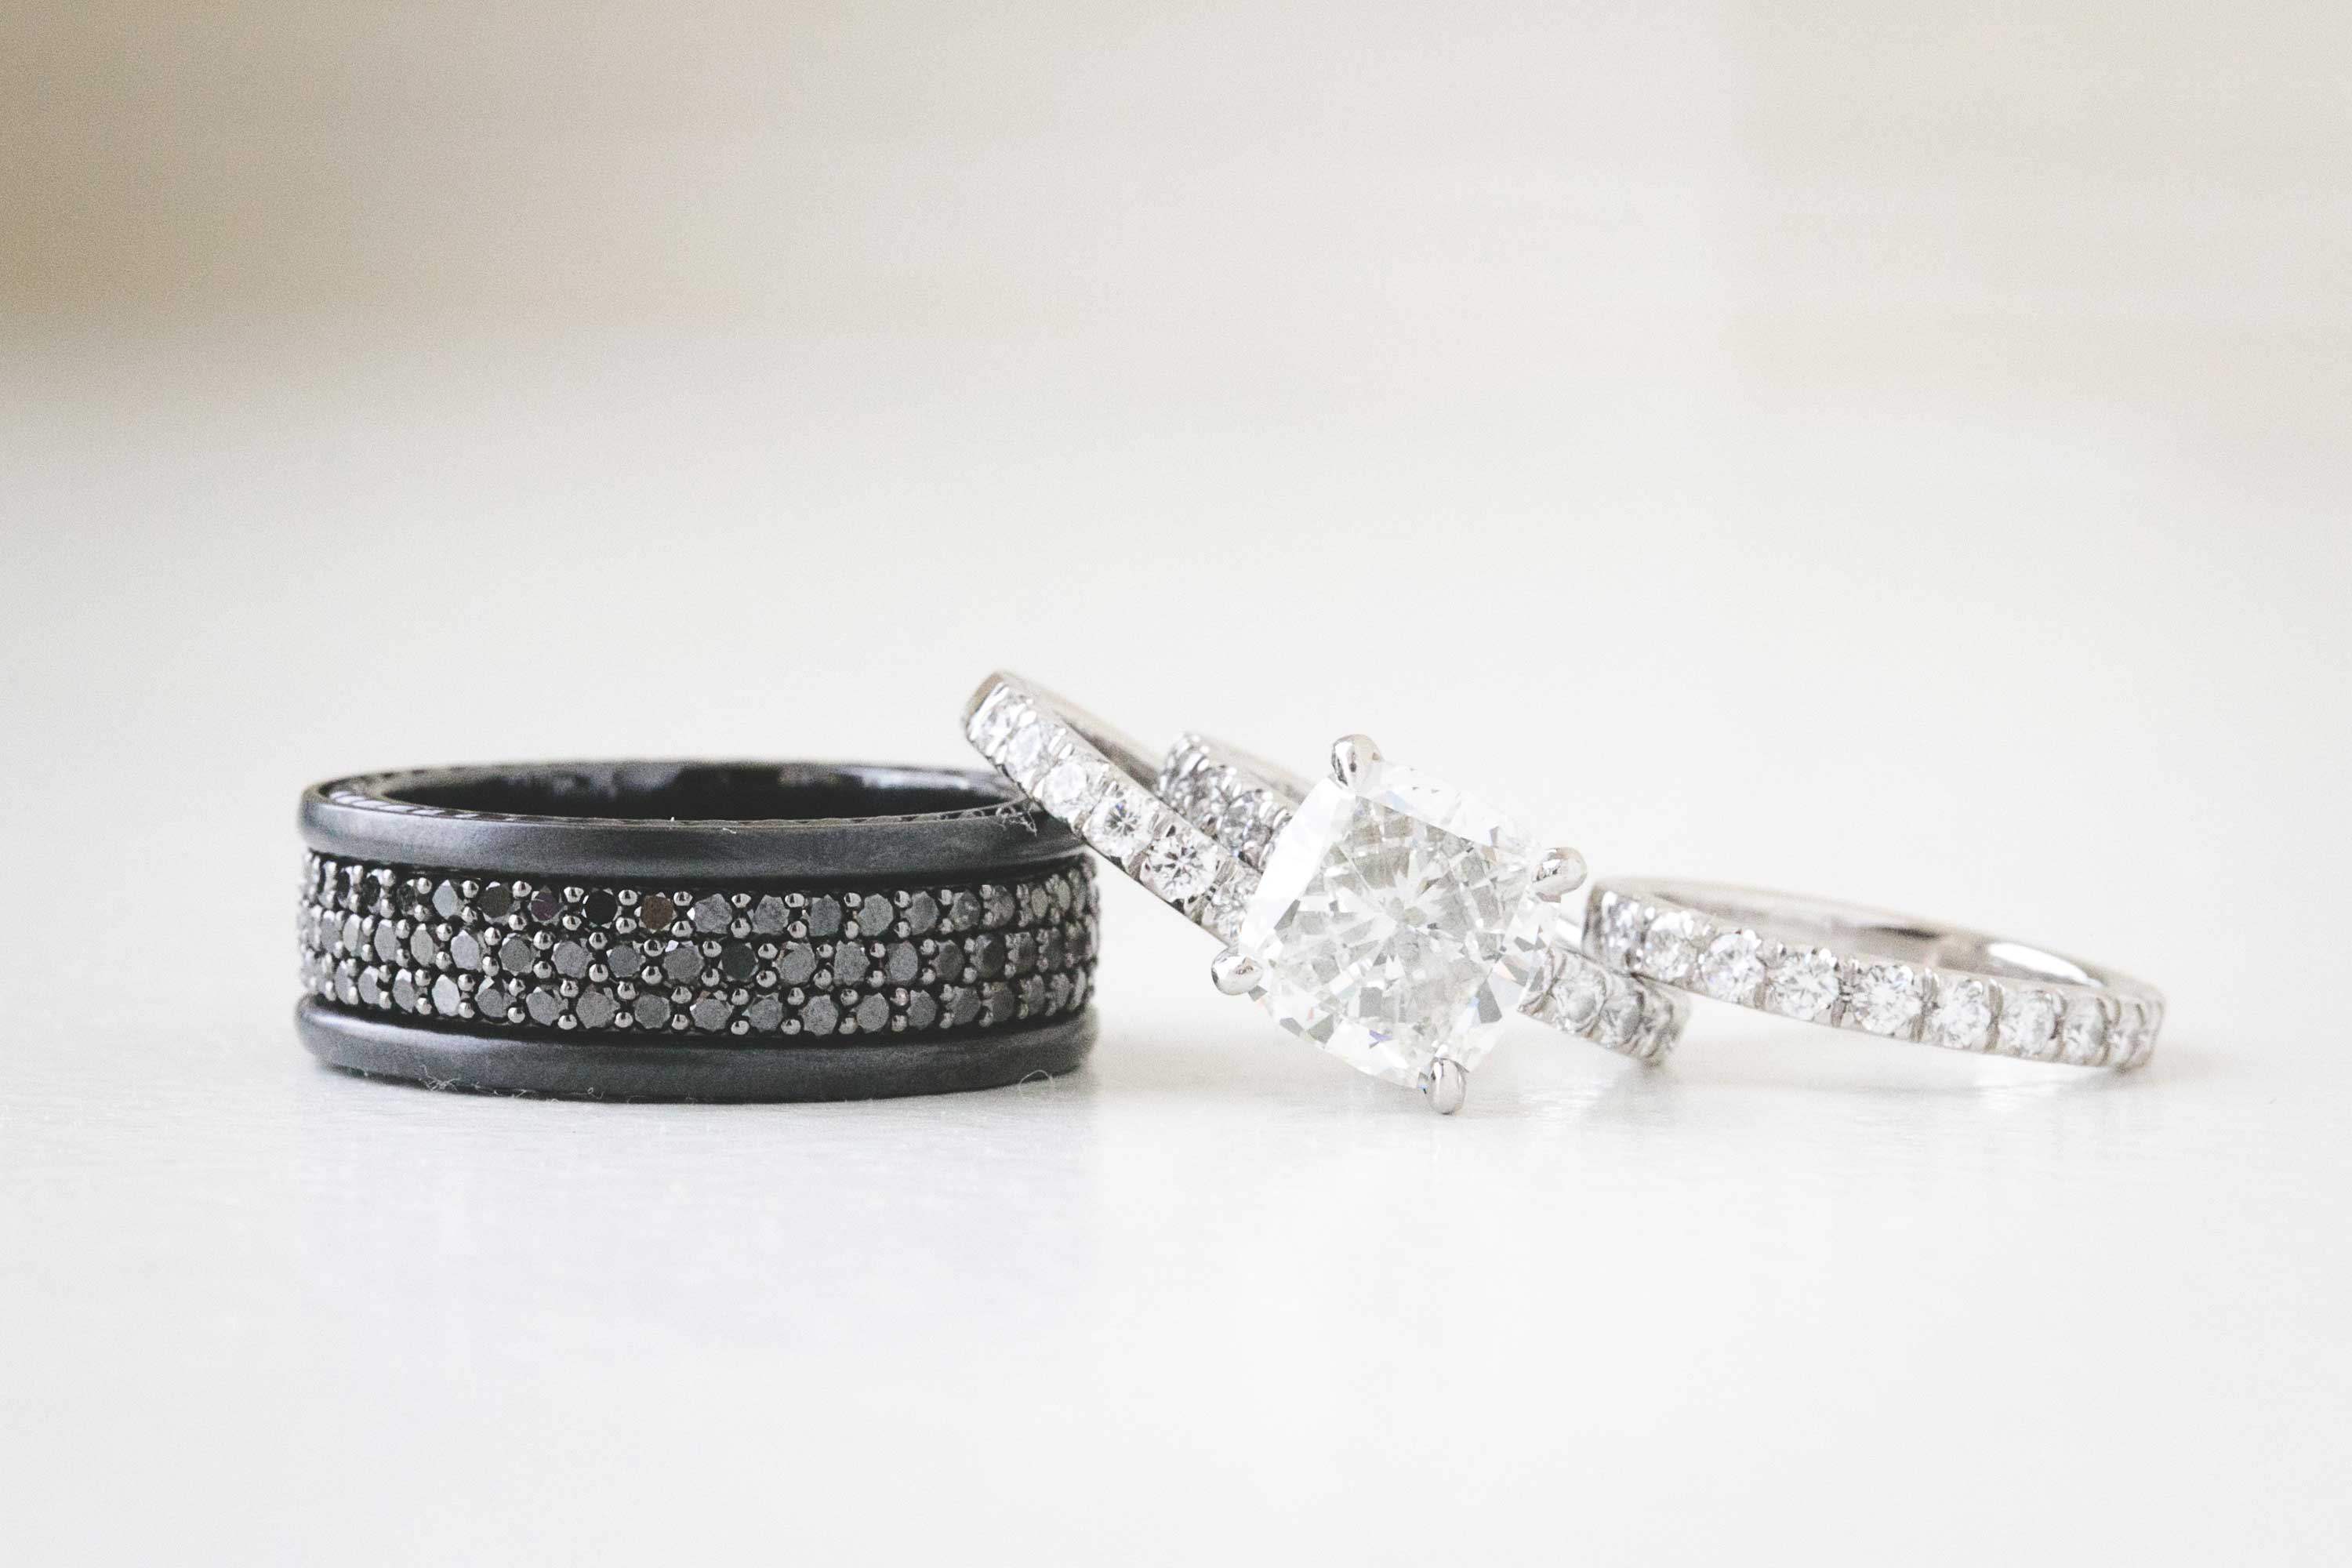 unique men's wedding bands, black diamonds